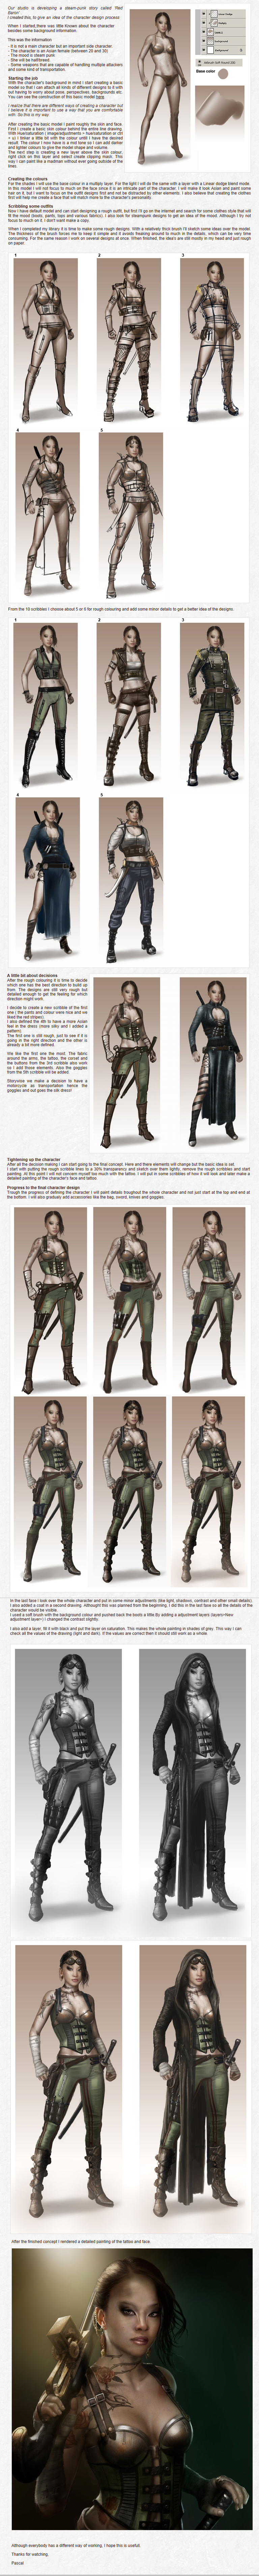 Character creation part 2